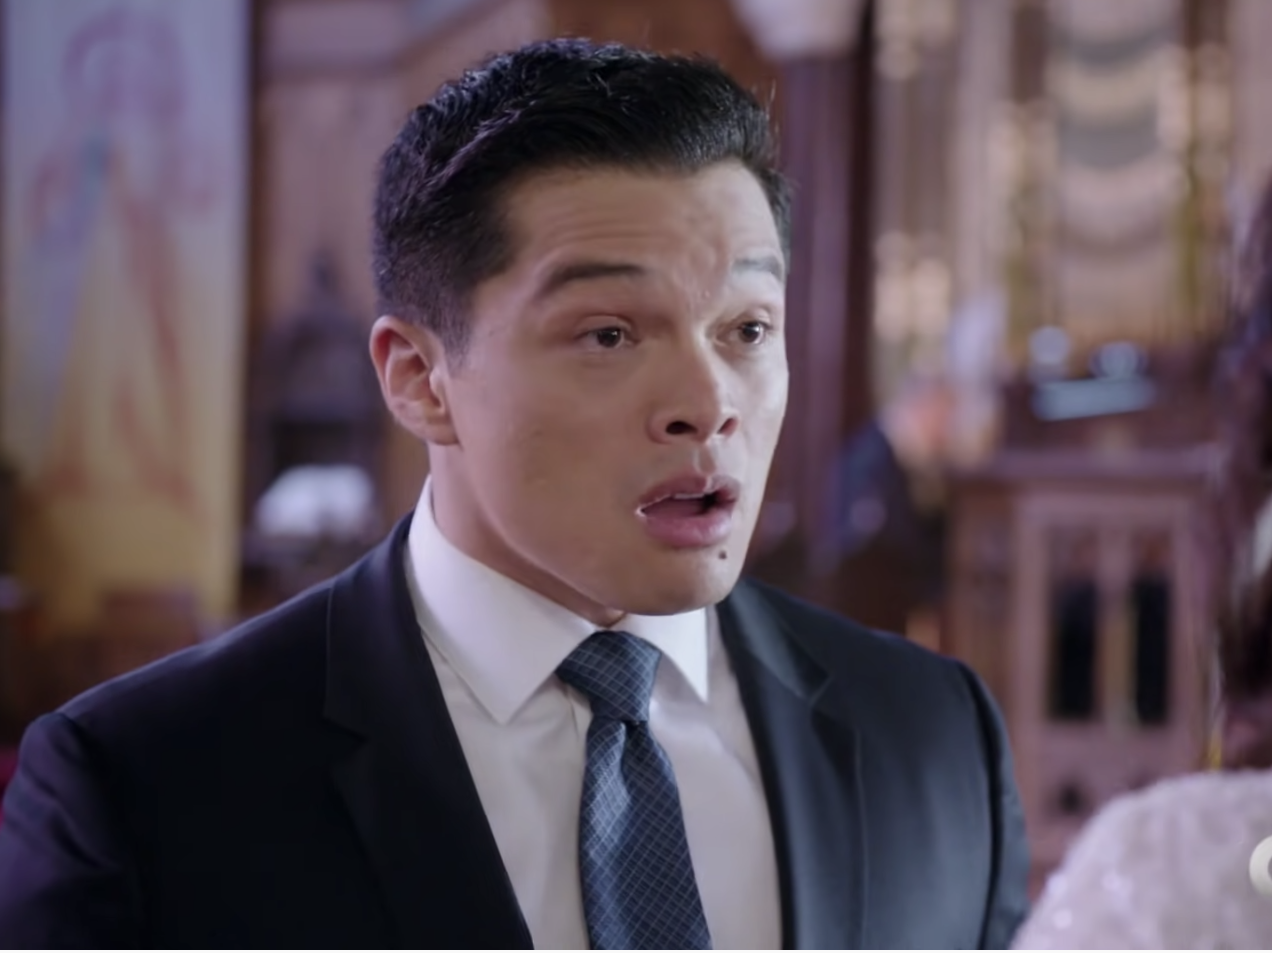 Vinny Rodgriguez as a shocked groom